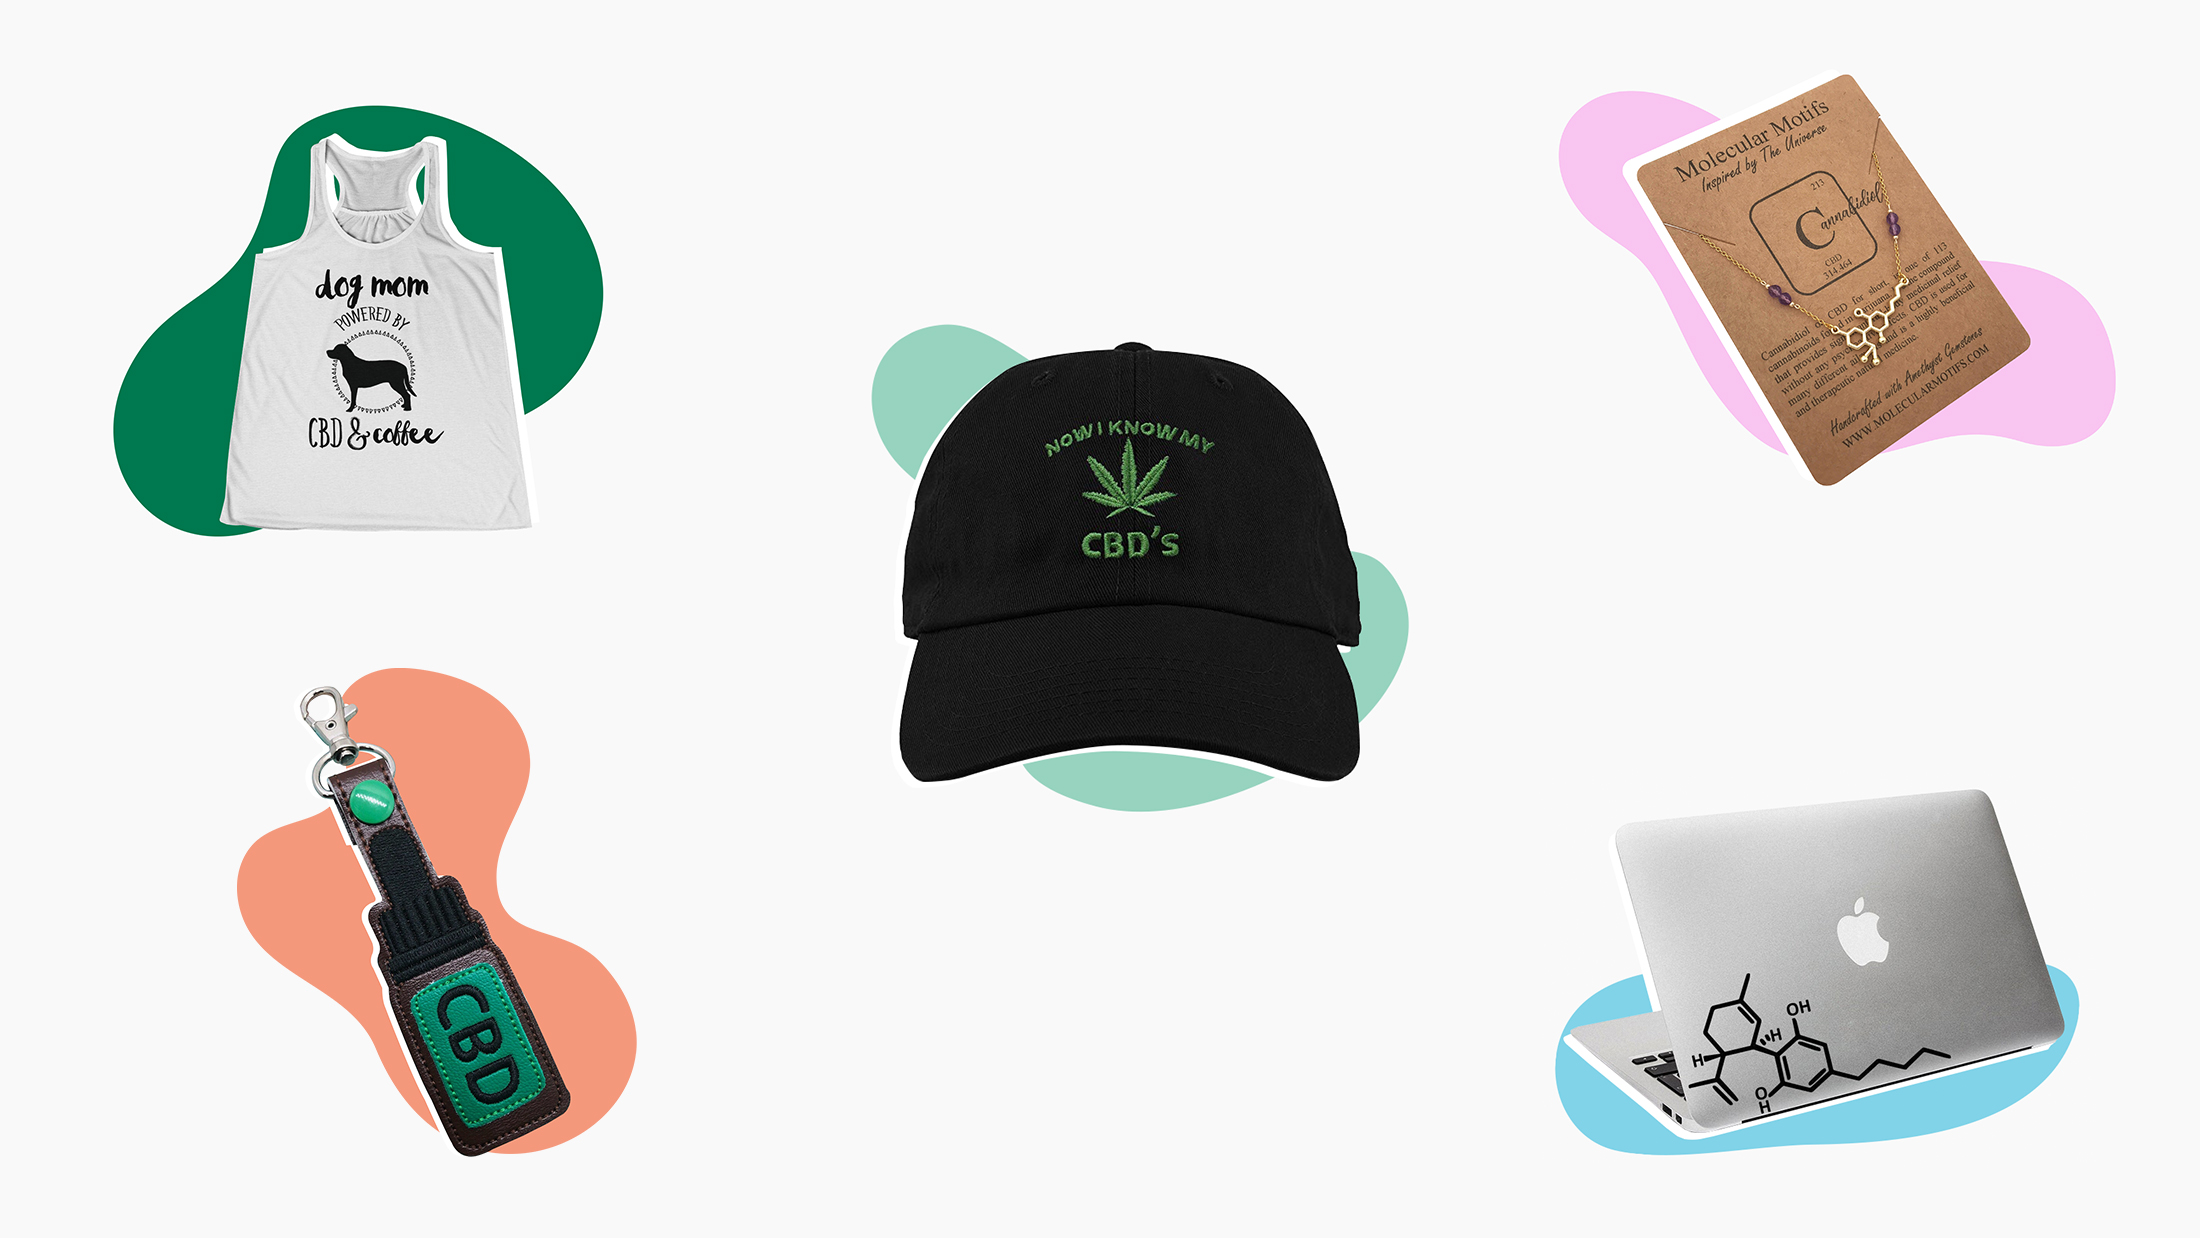 bd573b740 The rise of CBD sparked demand for CBD-related t-shirts and jewelry ...